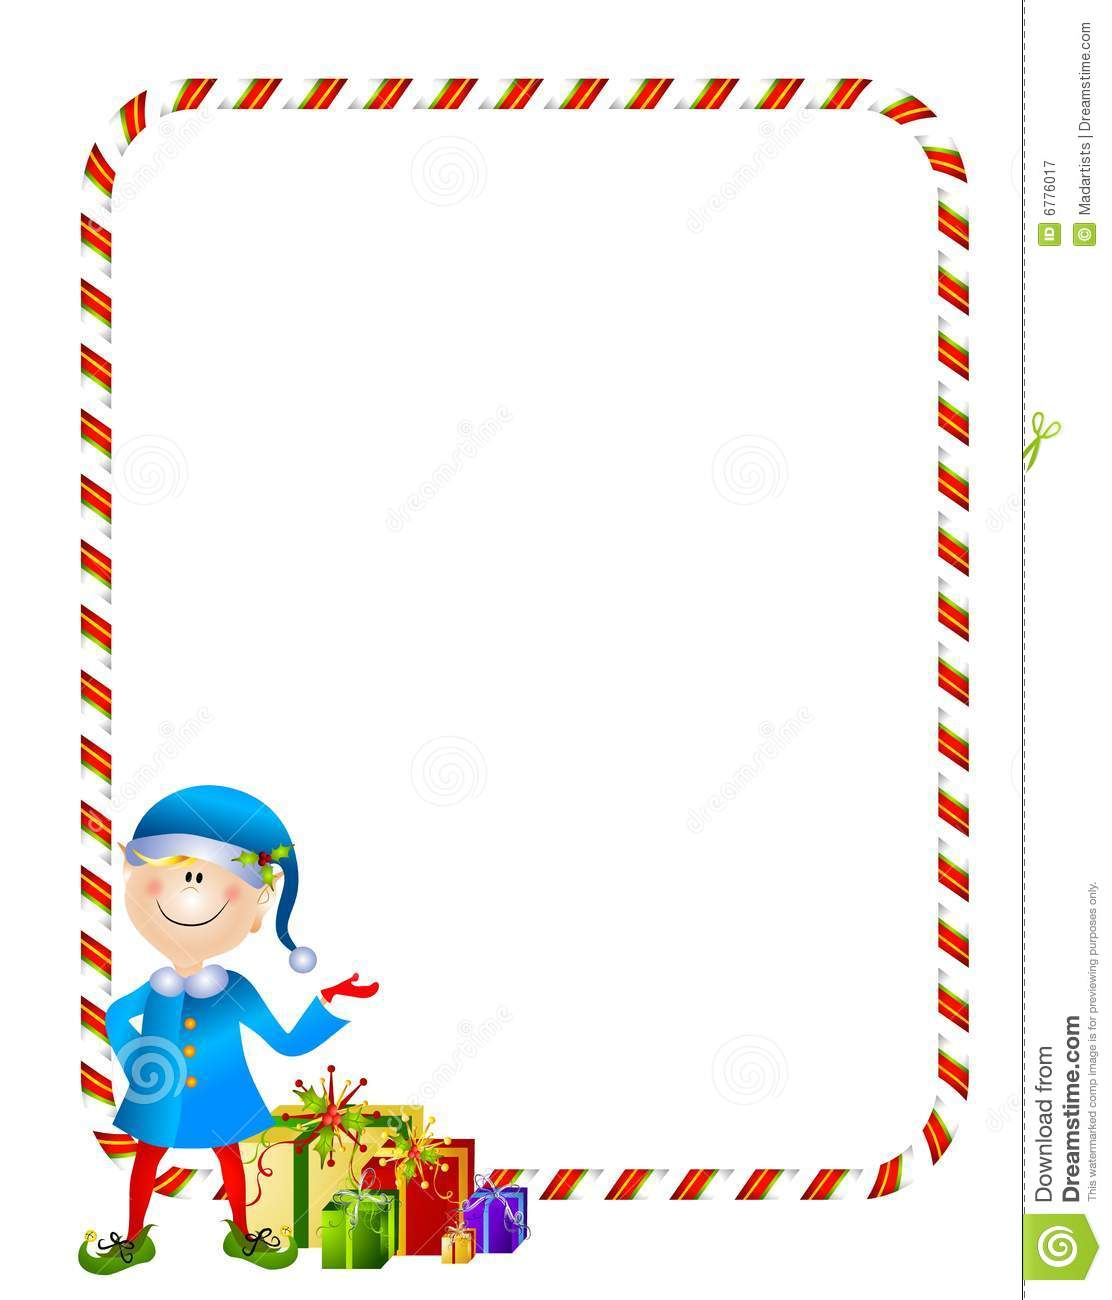 Featuring A Little Christmas Elf With Gifts And Candy Cane Border